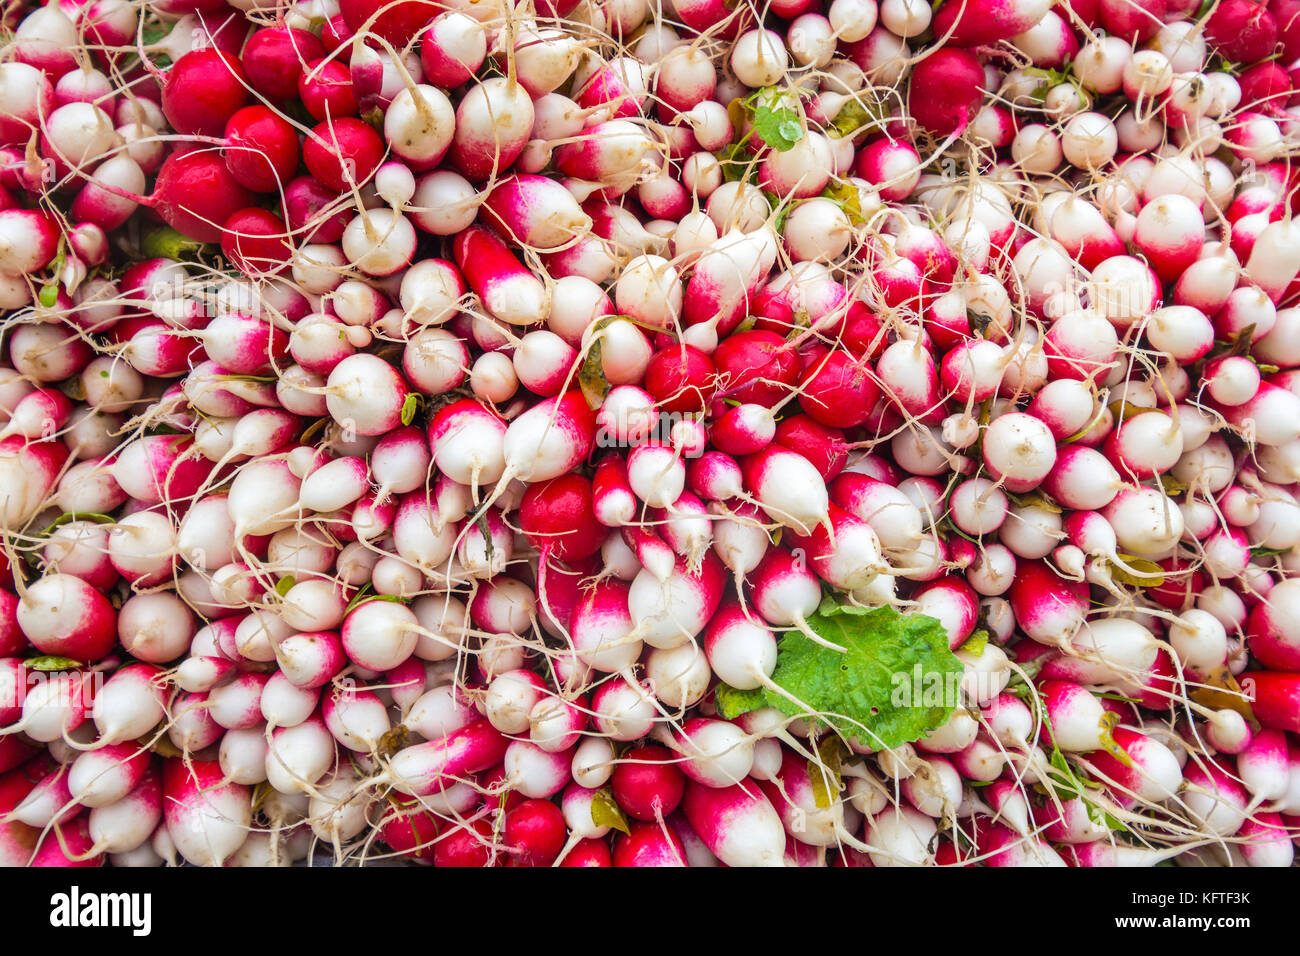 Bunches of radishes on market stall - France. - Stock Image